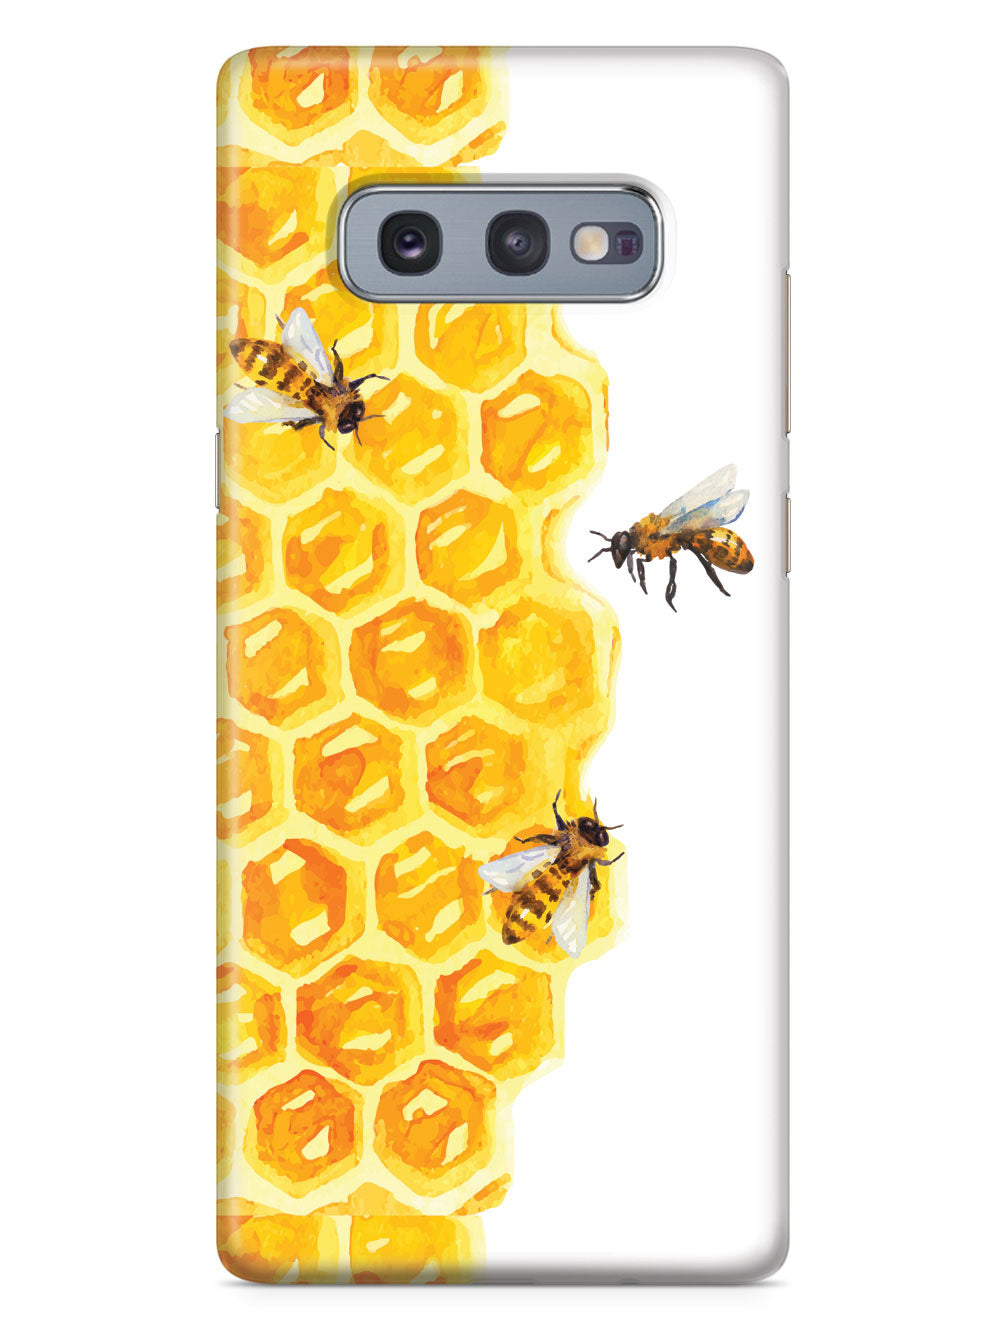 Watercolor Bees on Honeycomb - White Case